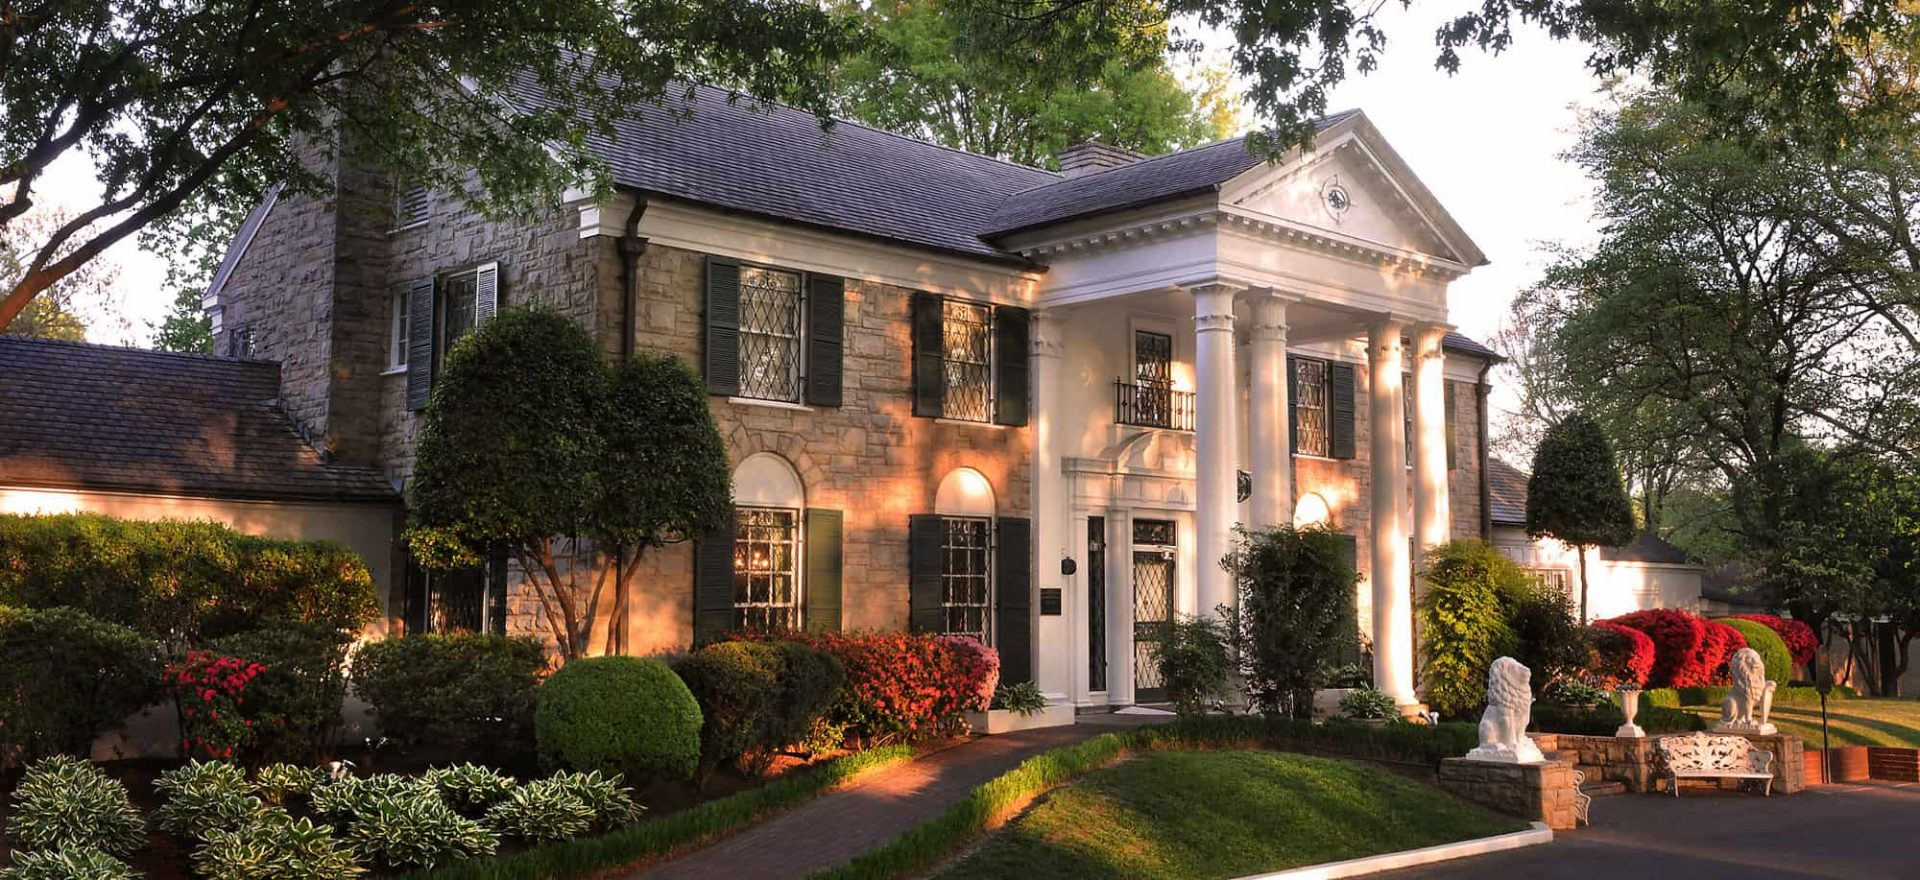 High Quality Graceland Live Cam from Elvis House in the USA.